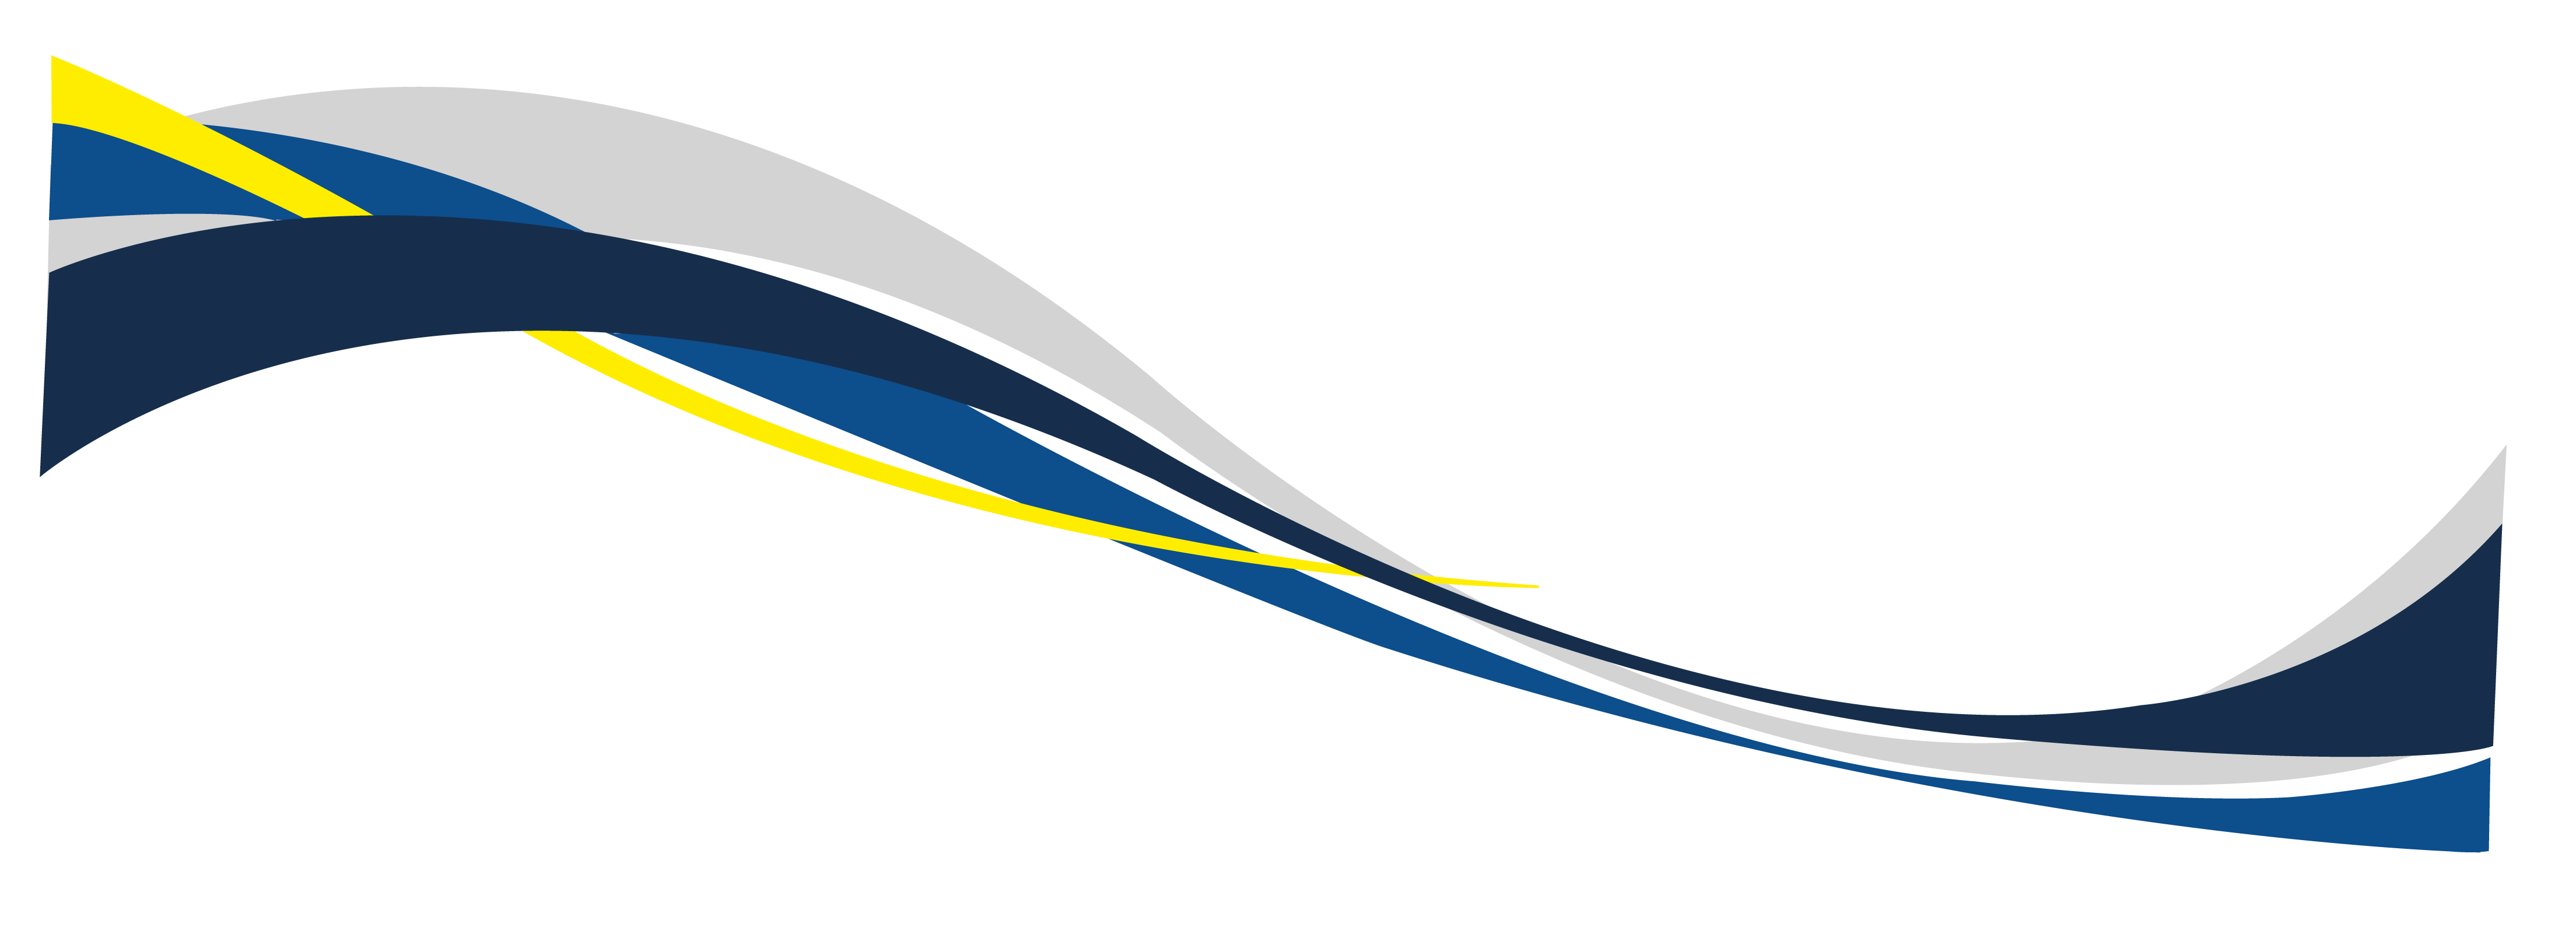 Graphic PNG Picture.